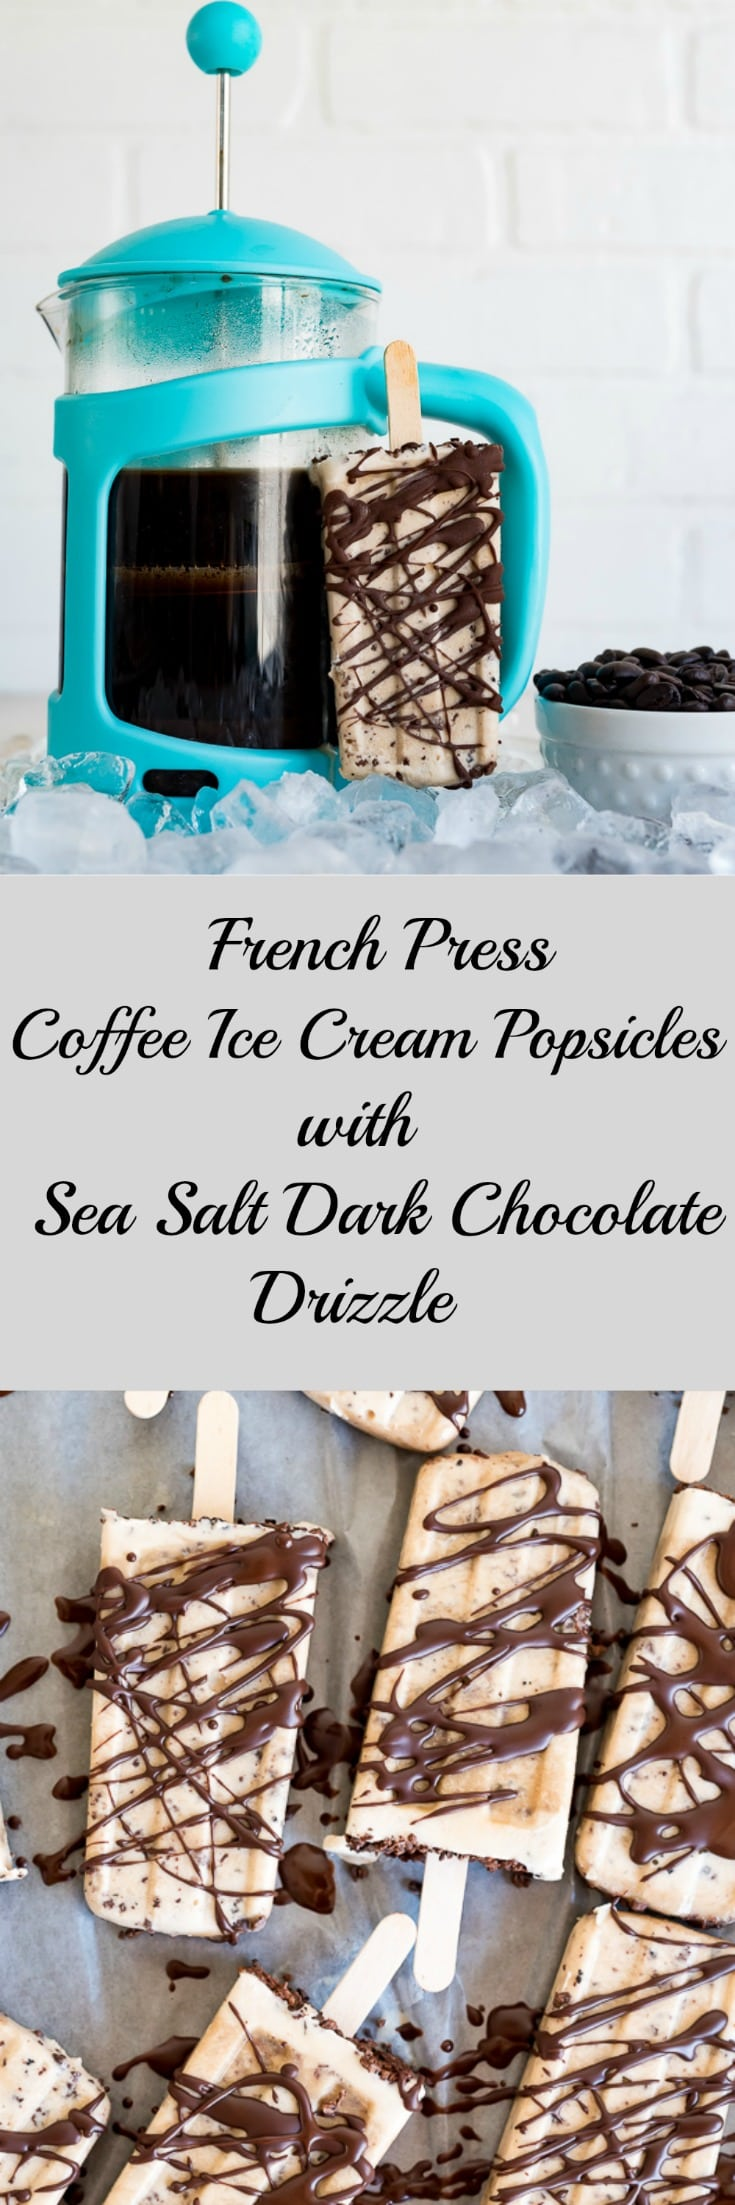 French Press Coffee Ice Cream Popsicles with Sea Salt Dark Chocolate Drizzle www.pineappleandcoconut.com #ad #discoverworldmarket